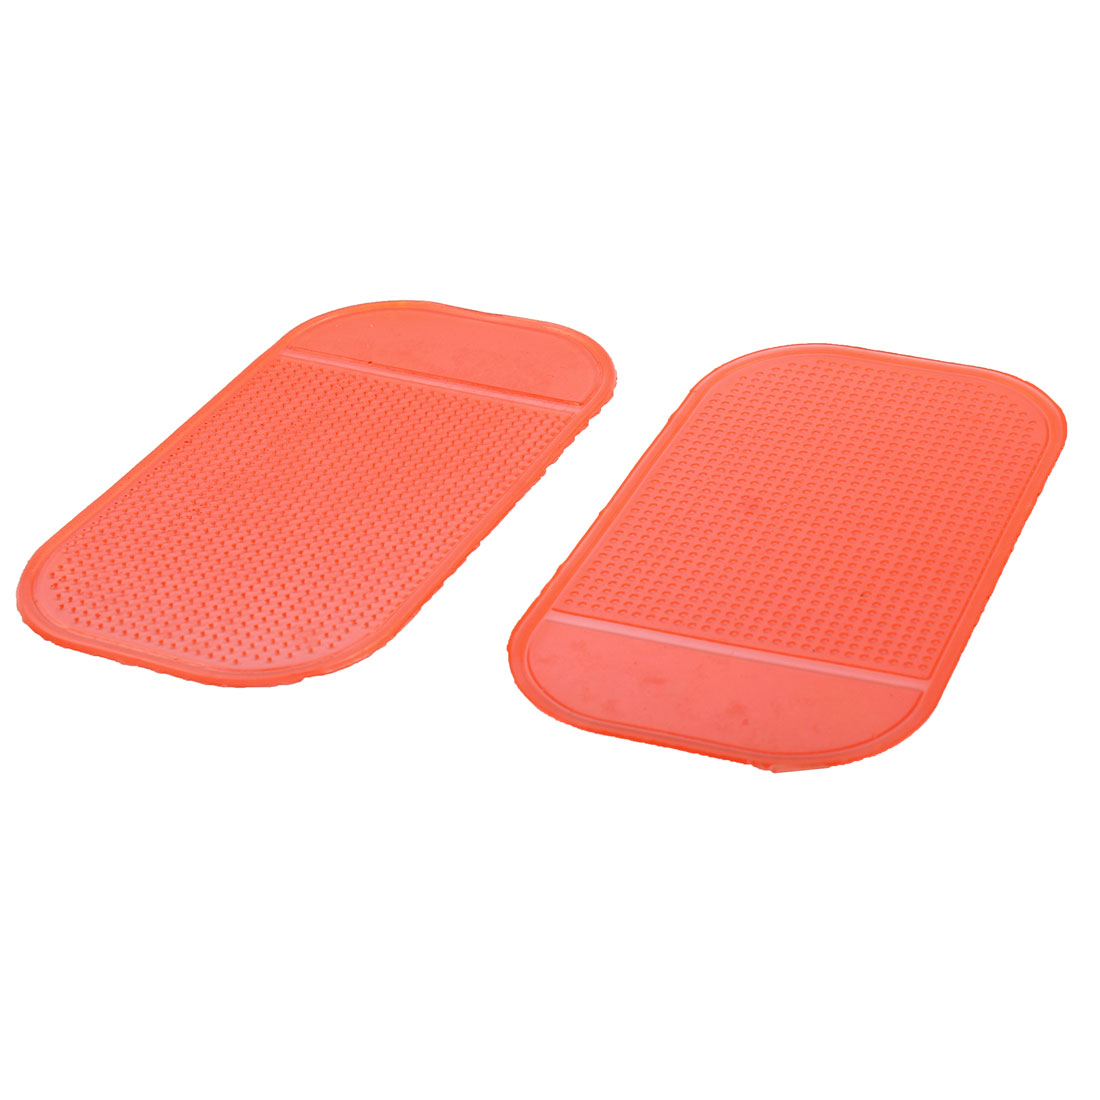 Car Silicone Rectangle Shaped Anti-slip Nonslip Decoration Adhesive Mat Sticky Pad Red 2pcs